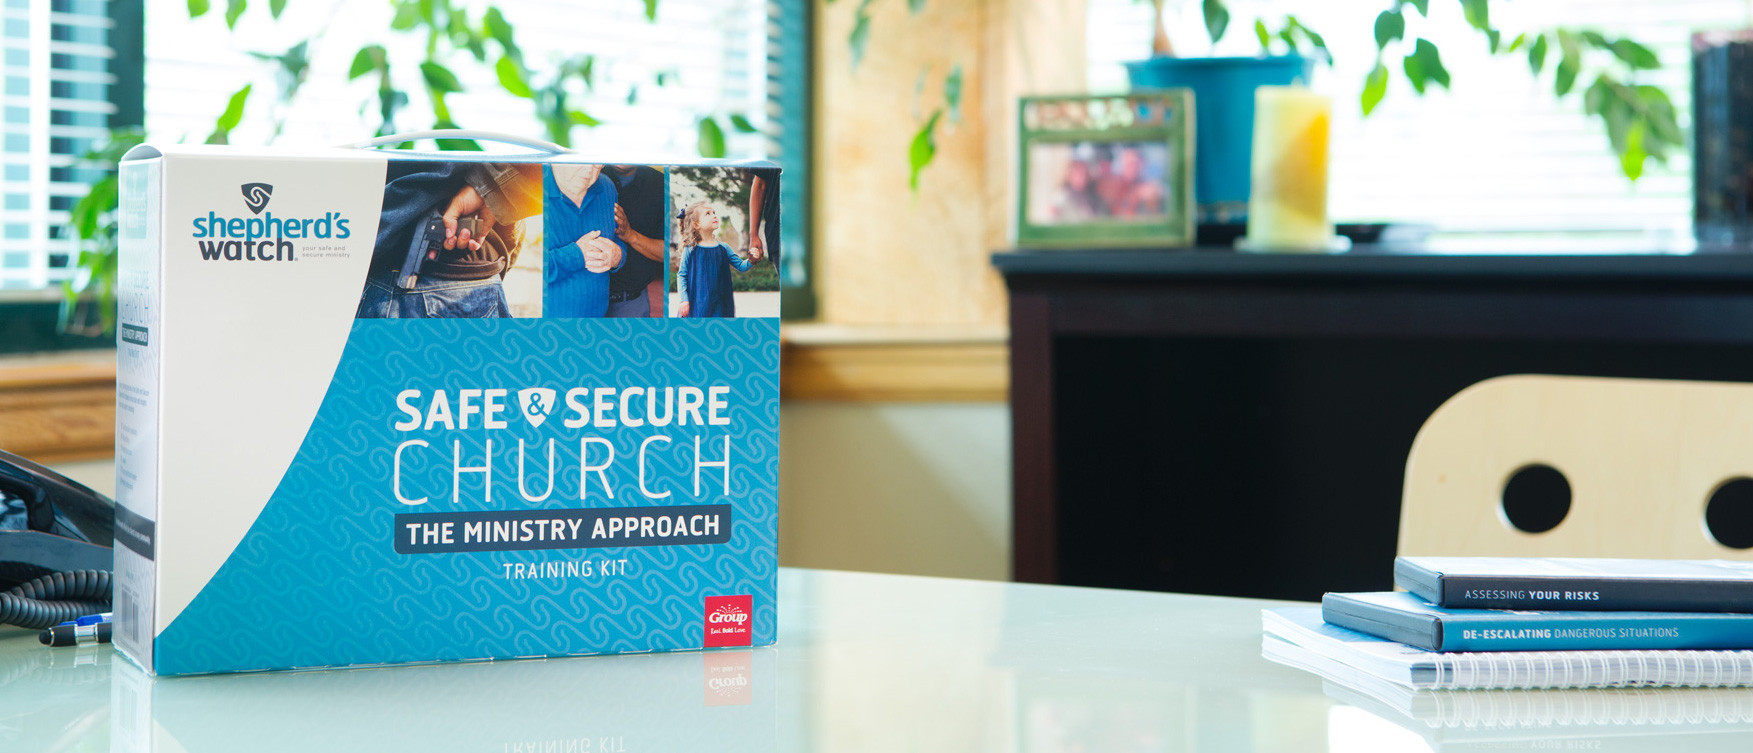 Church Security assessment form Best Of Church Background Checks for Staff and Volunteers Group